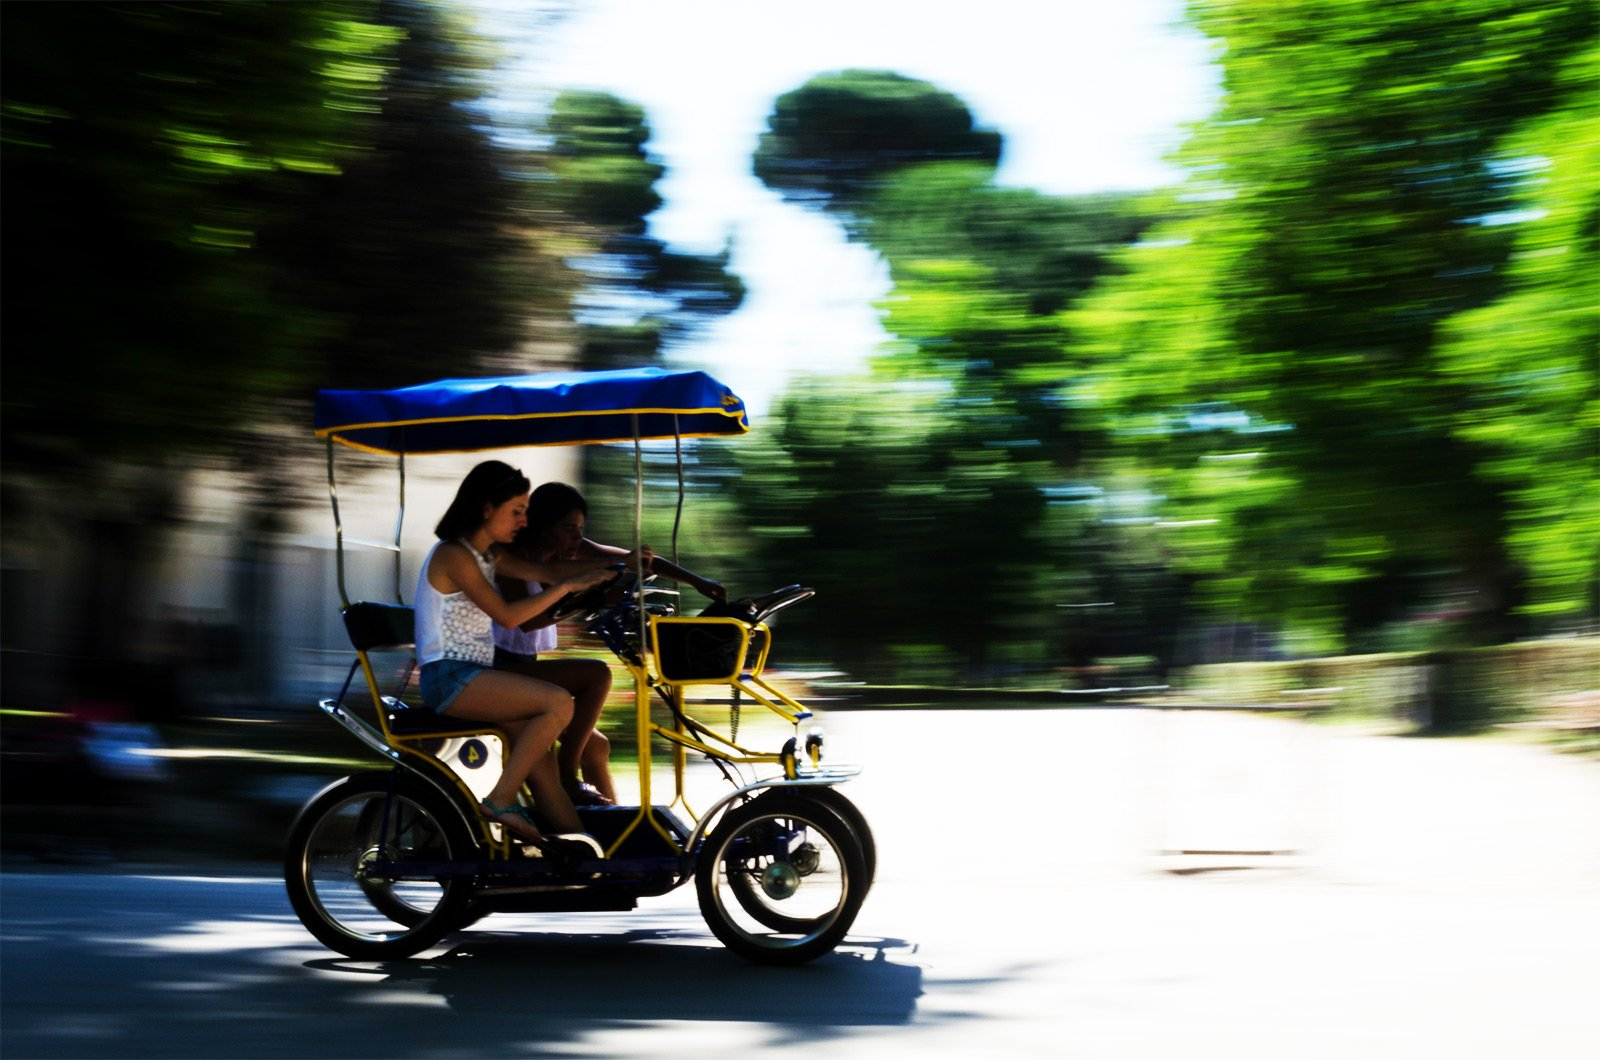 How to explore Villa Borghese in the quadricycle in Rome